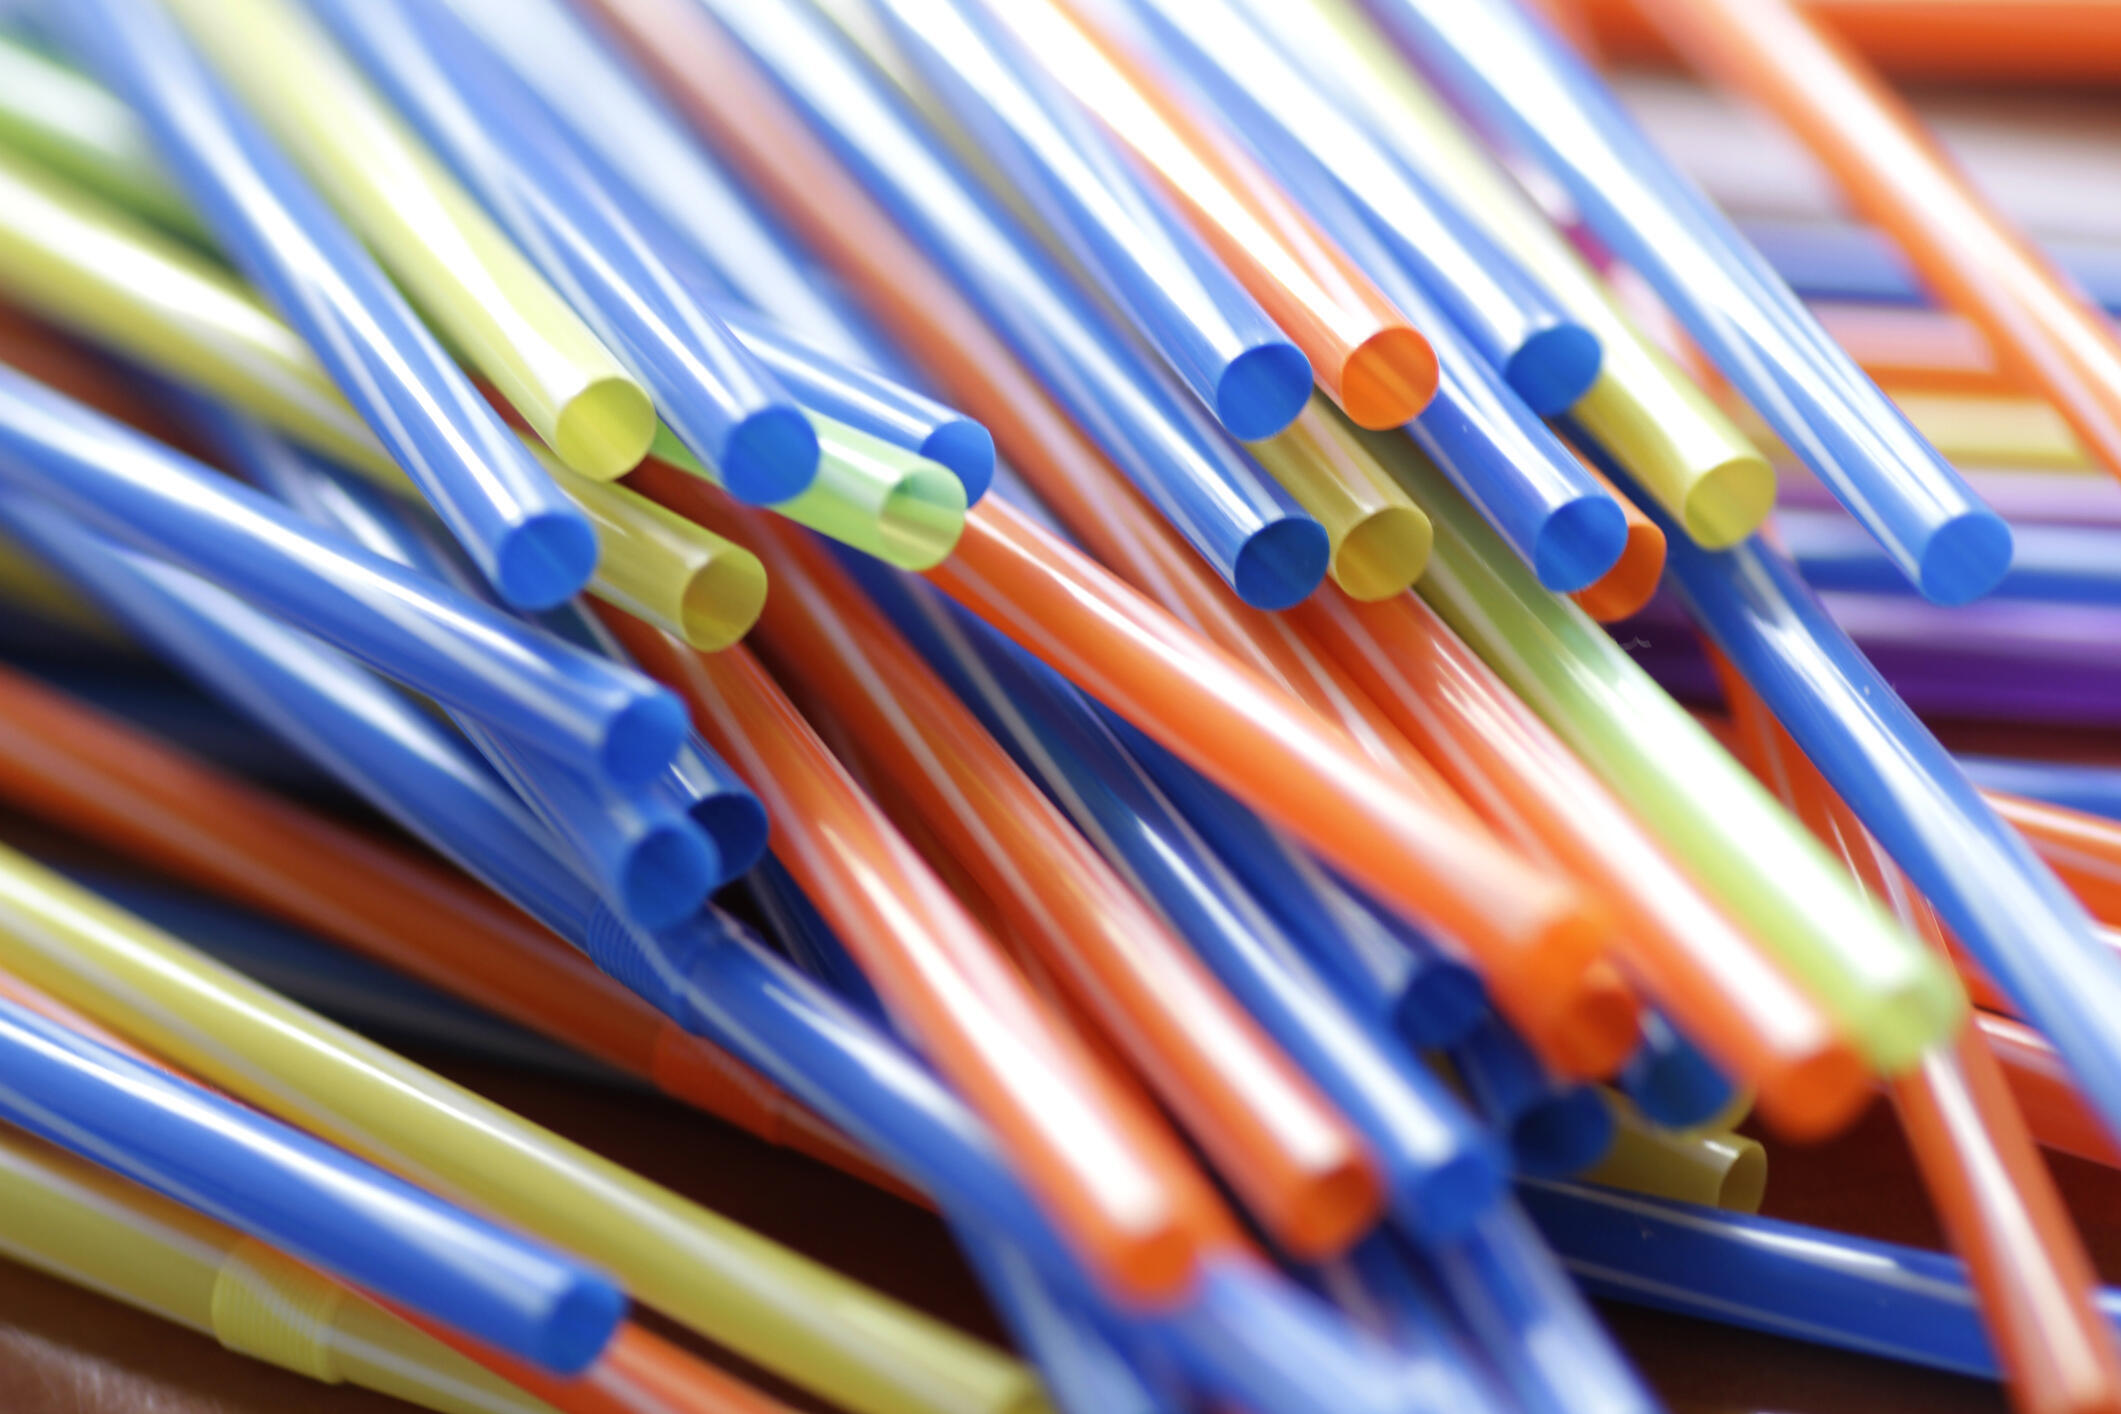 The last straw: single-use plastic straws, plates, cups and other products were banned in France as of 1 January 2020.